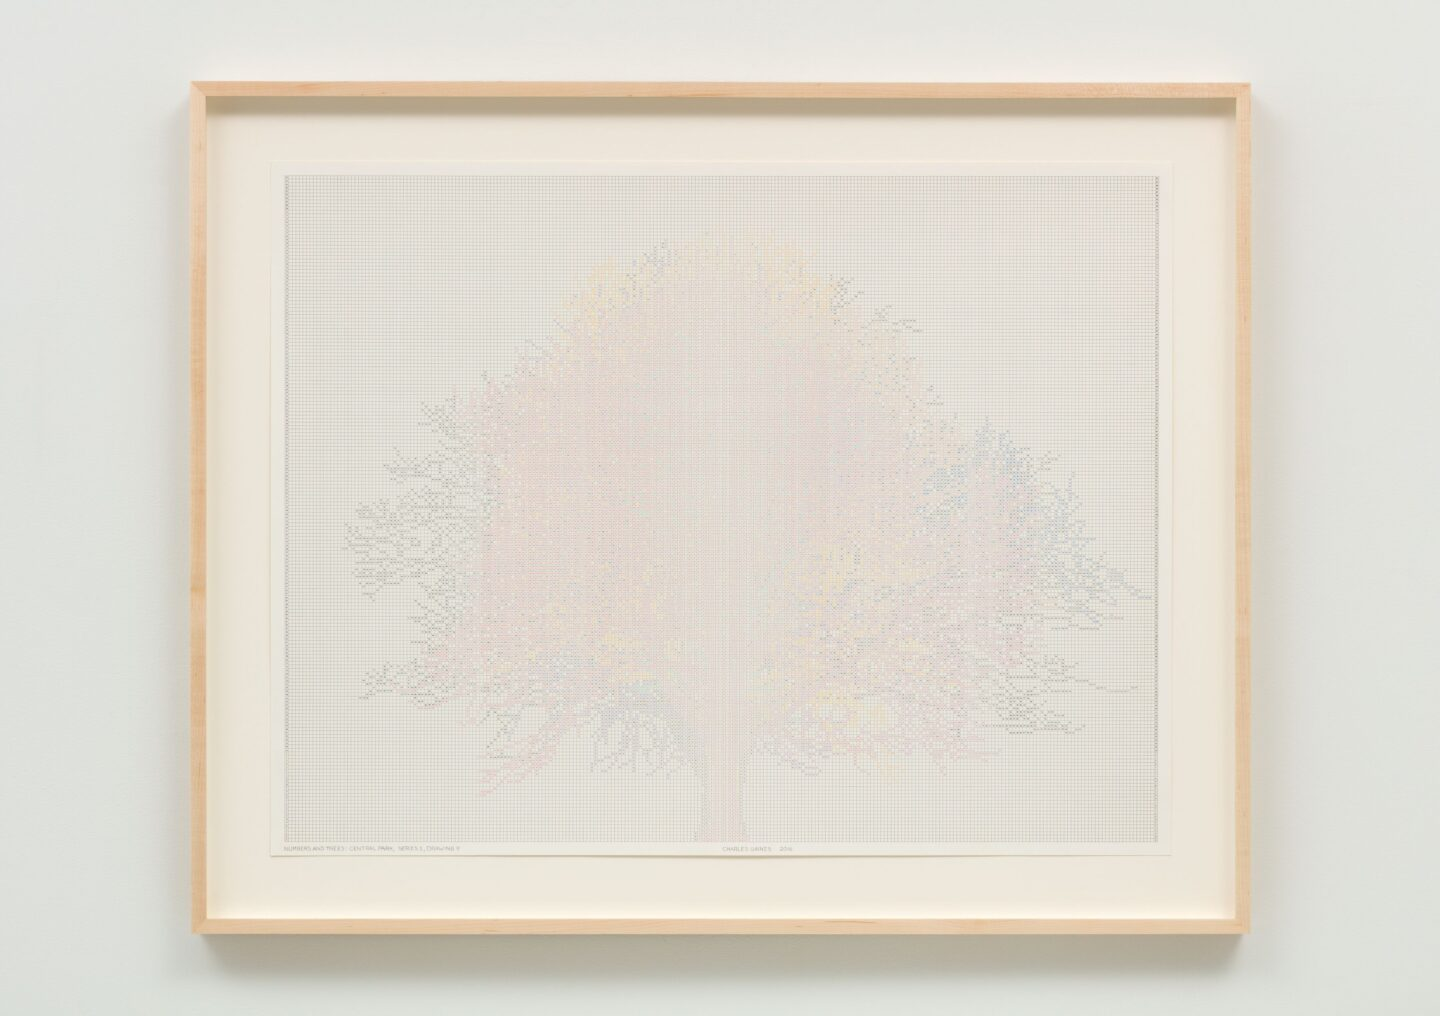 Exhibition View Charles Gaines Soloshow «Drawings; view on Numbers and Trees: Central Park, Series I, Drawing 9, 2016» at Hauser & Wirth, St. Moritz, 2020 / Photo: Fredrik Nilsen / © Charles Gaines / Courtesy: the artist and Hauser & Wirth